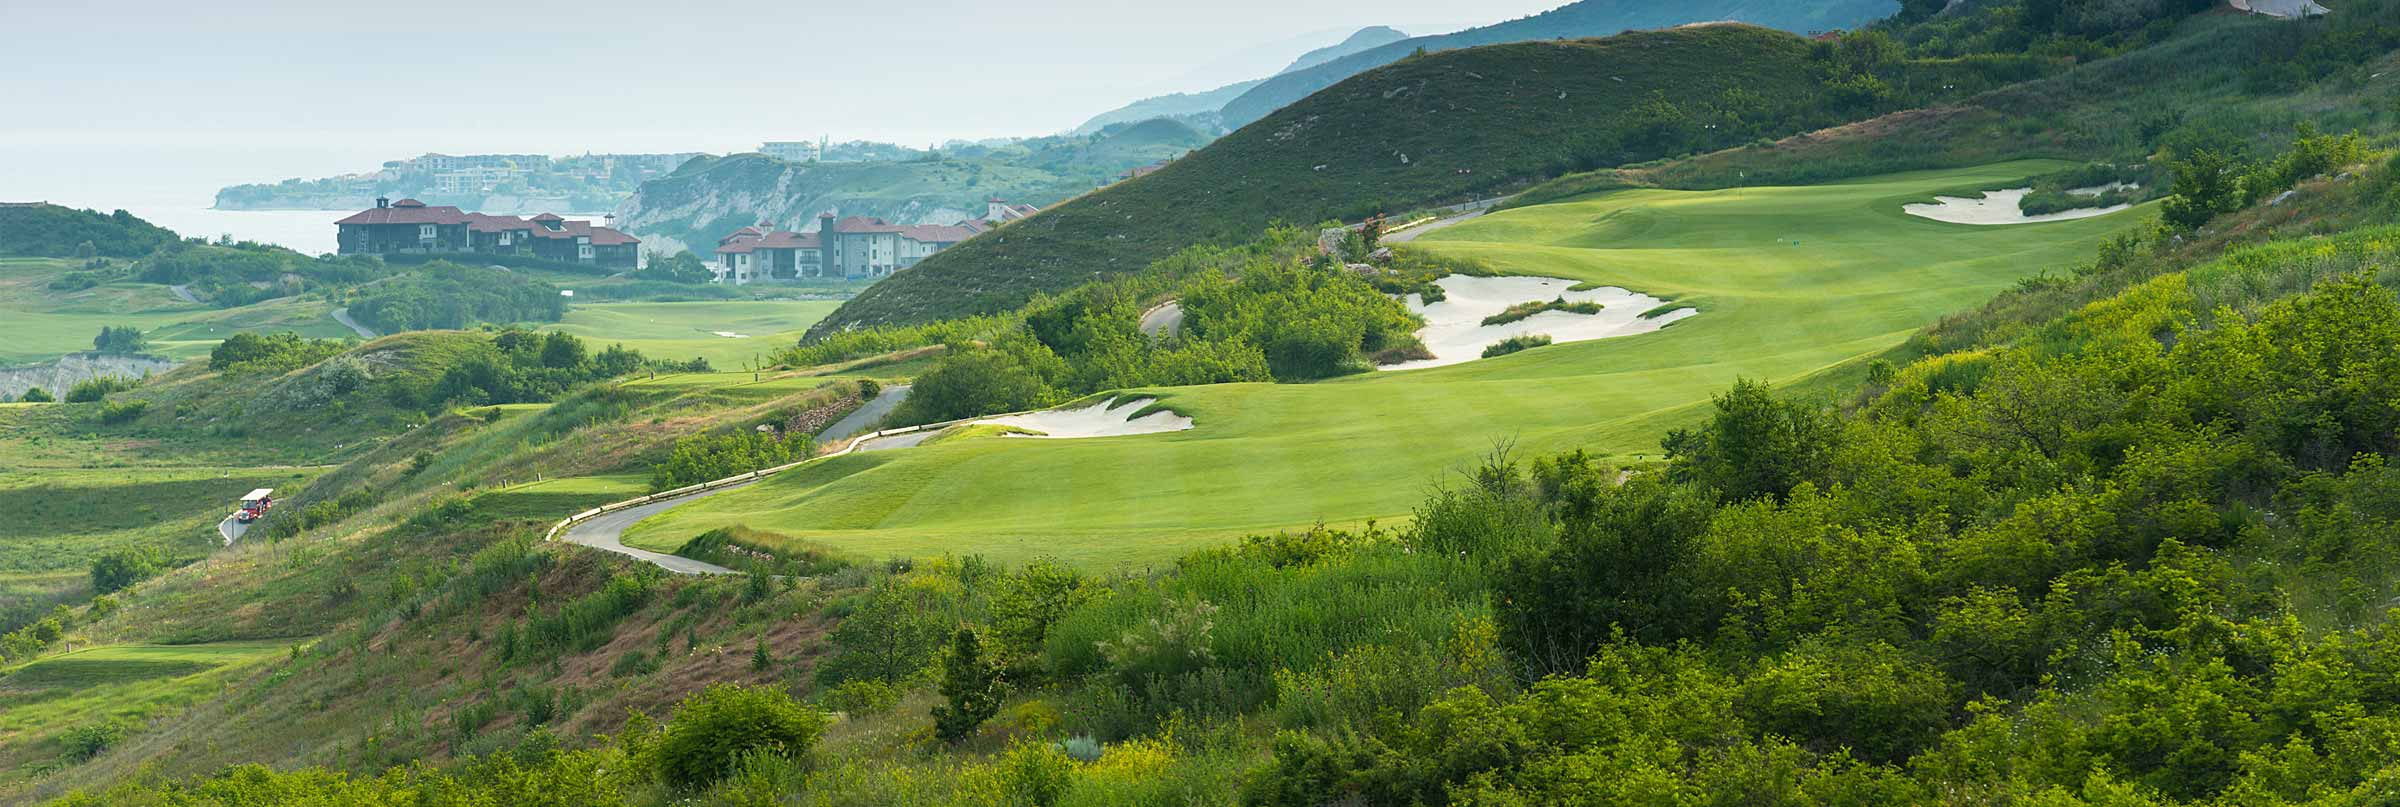 Thracian Cliffs 2018 from €695